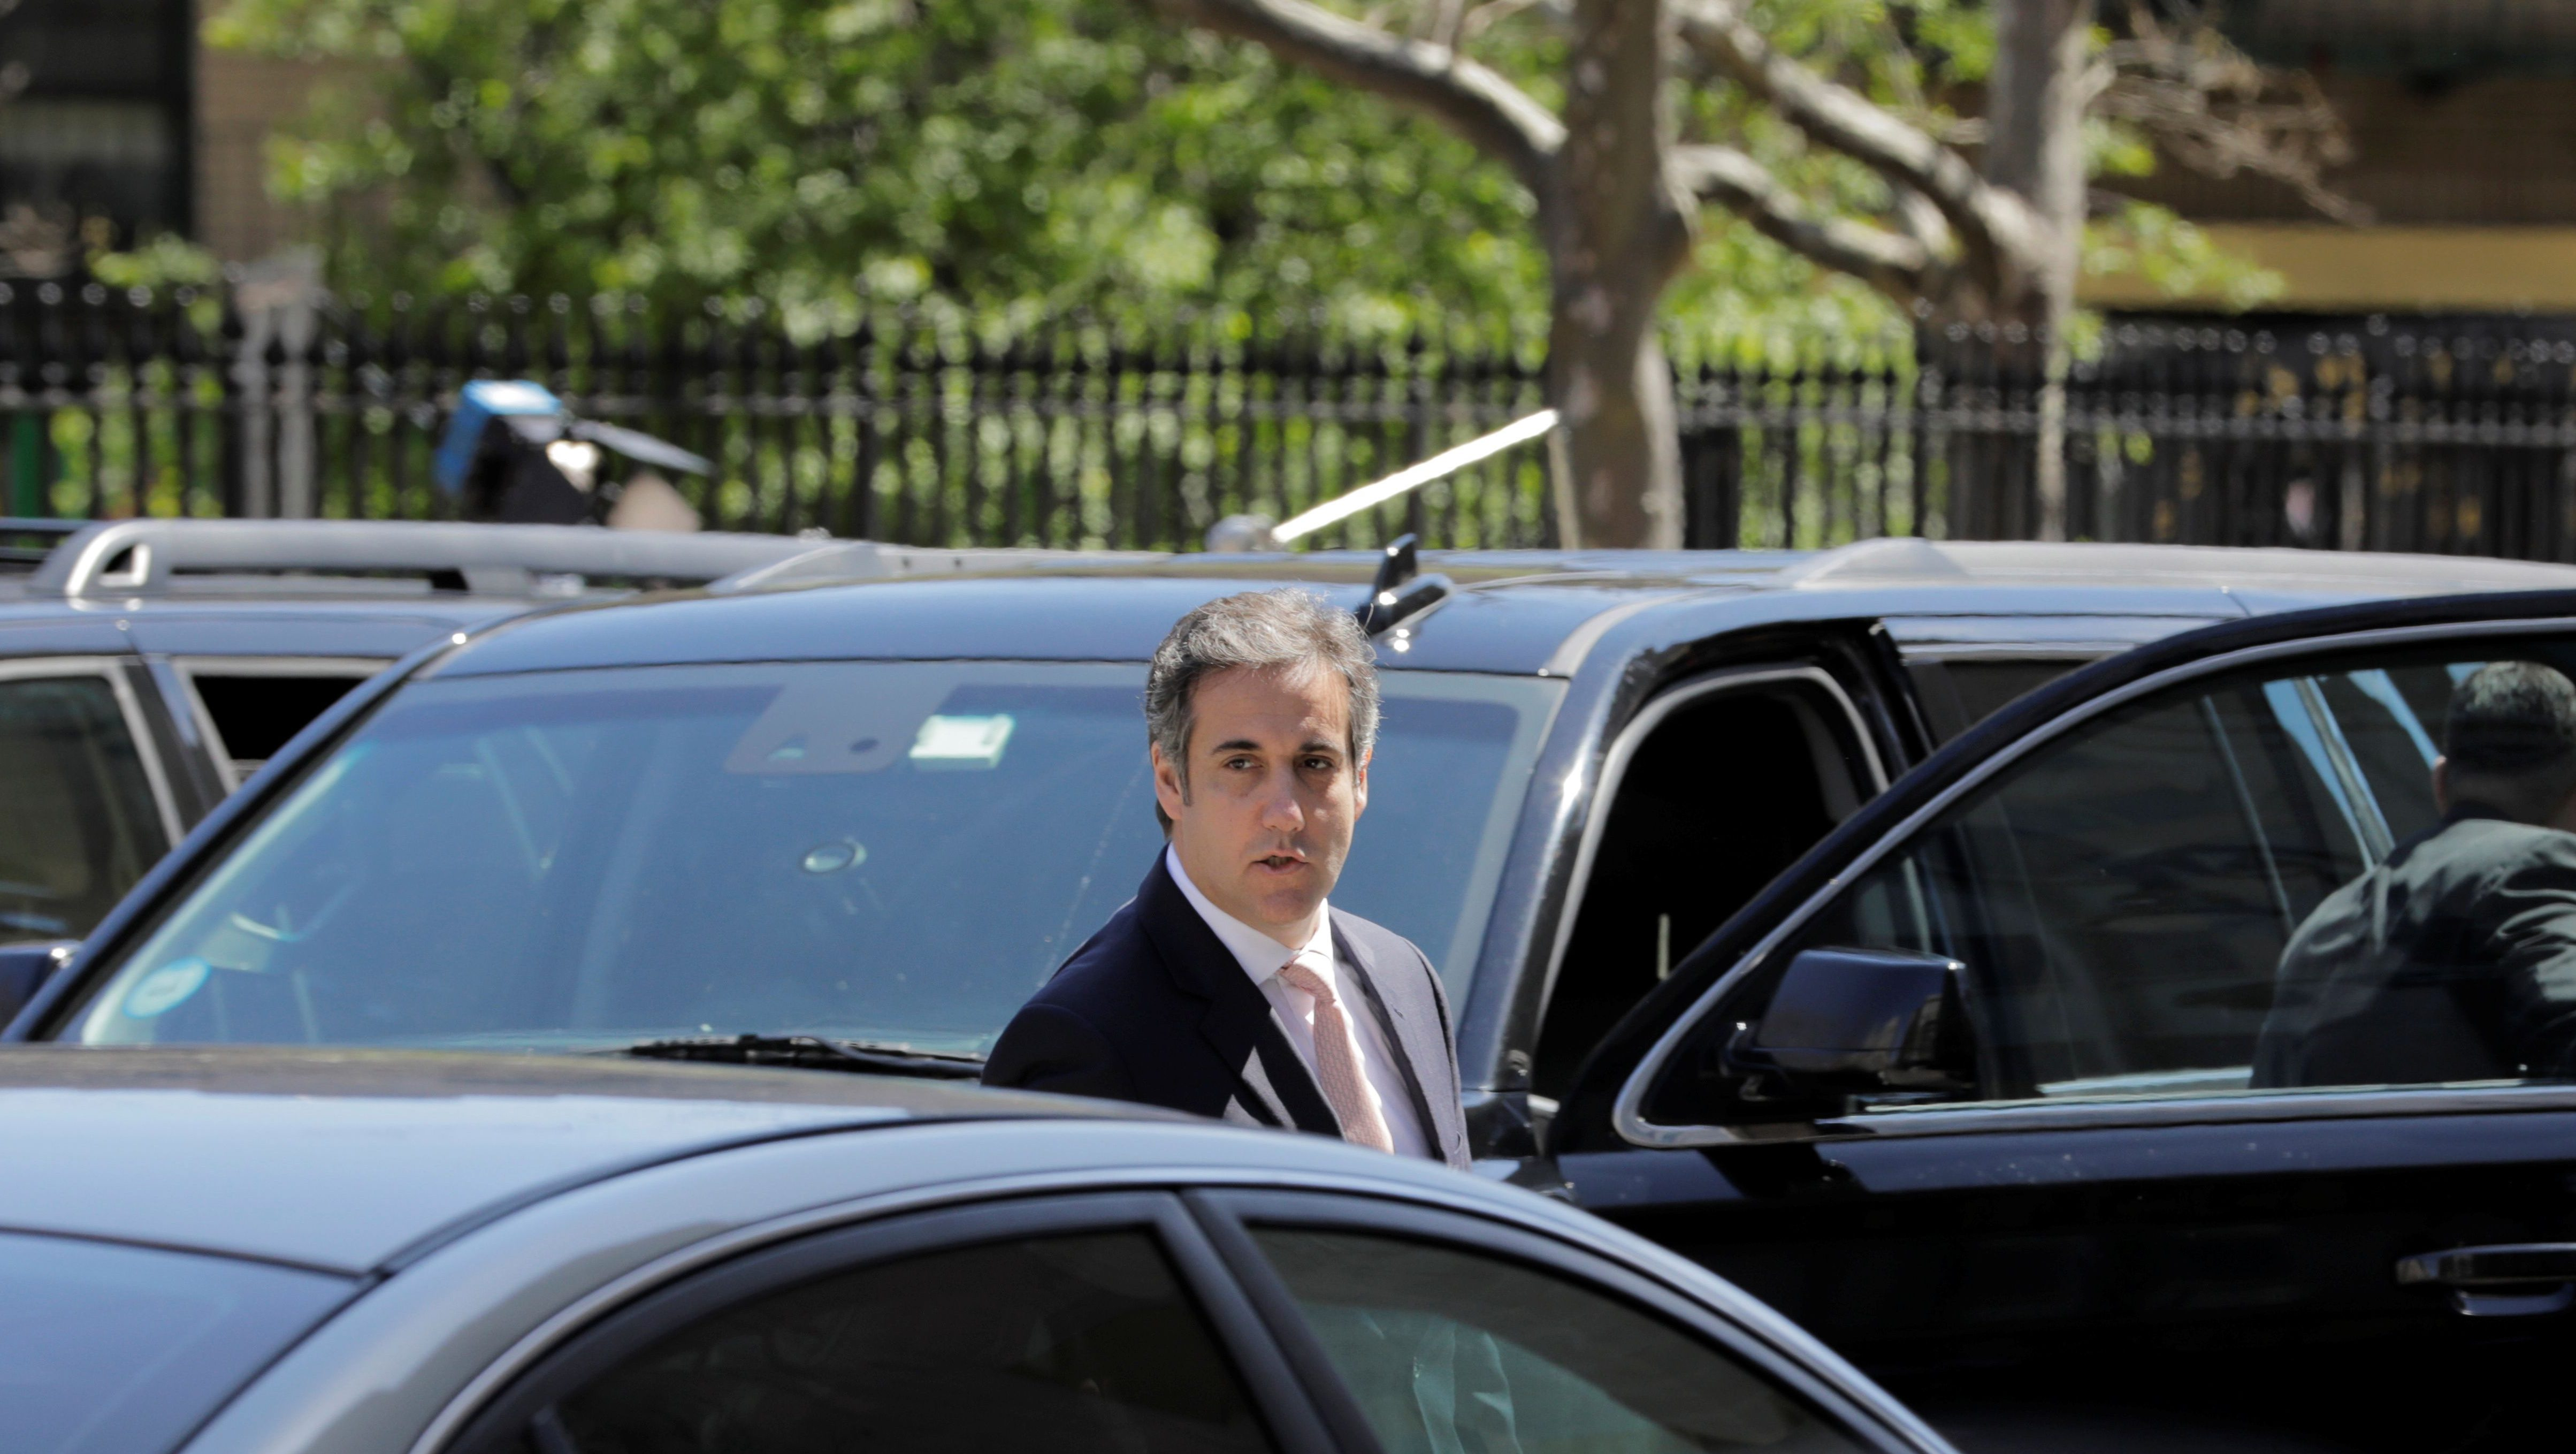 U.S. President Donald Trump's personal lawyer Michael Cohen